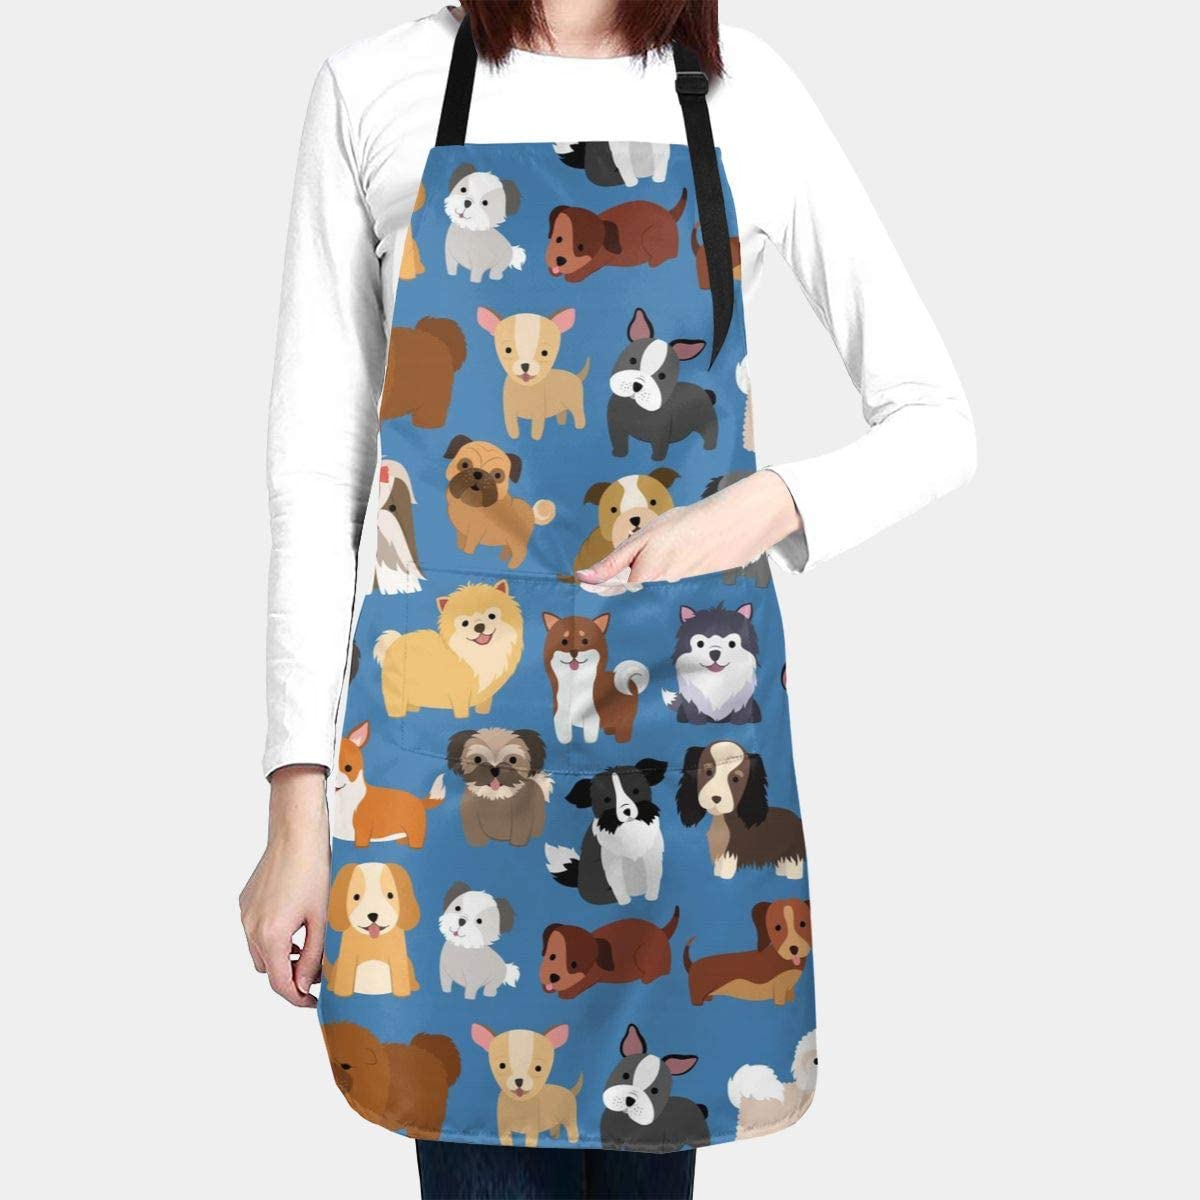 Duduho Cute Dogs Pets Apron with 2 Pockets Cooking Kitchen Bib Aprons for Women Men Unisex Adjustable Waterproof Stain Resistant